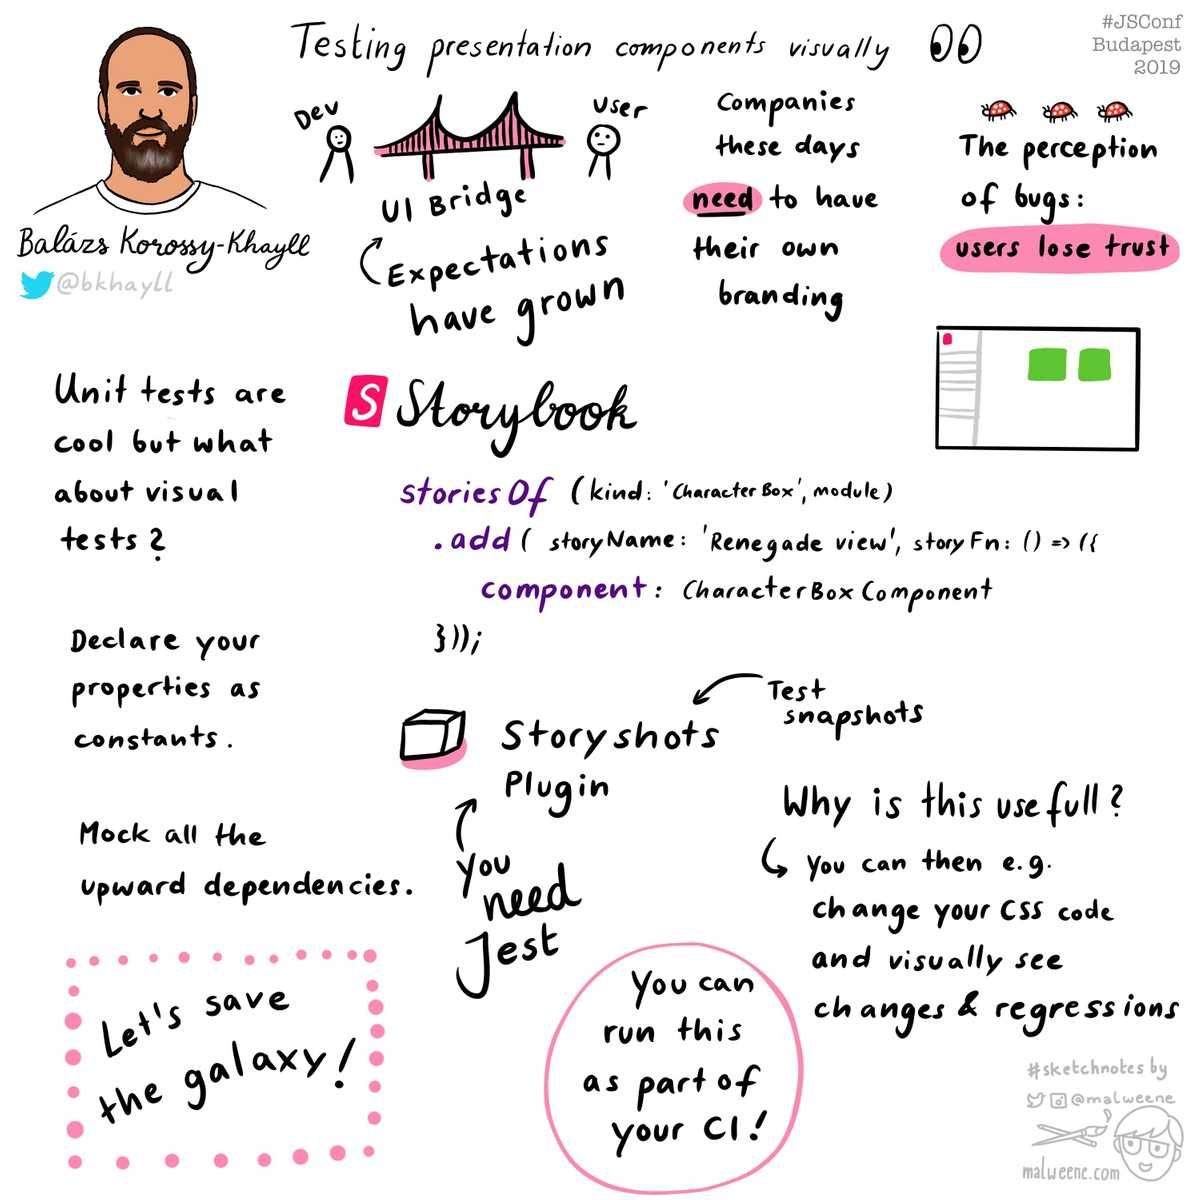 Hand-drawn sketch notes summarizing the talk of Balázs Korossy-Khayll